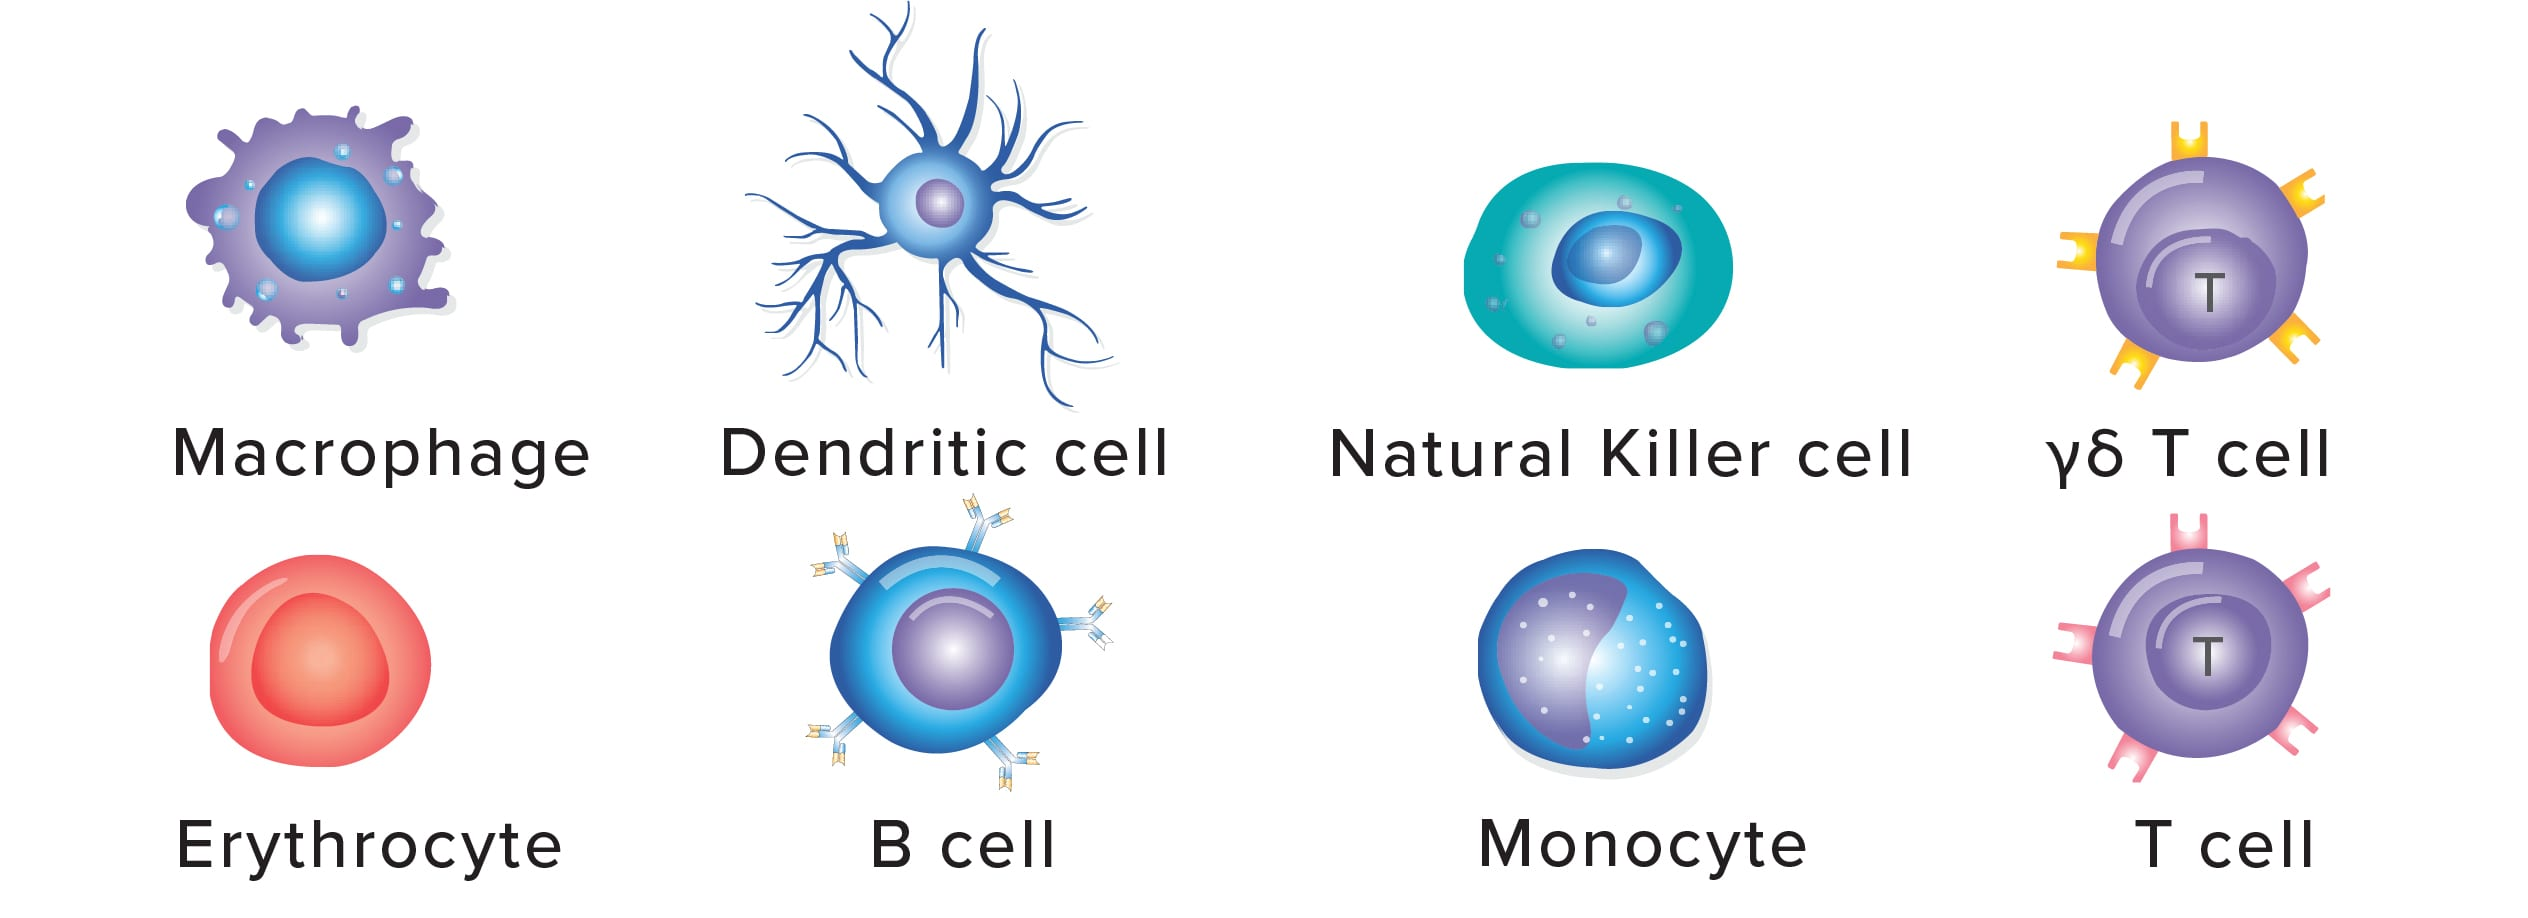 Picture of macrophage, dendritic cell, natural killer cell, gamma delta T cell, erthrocytte, B cell, monocyte, T cell